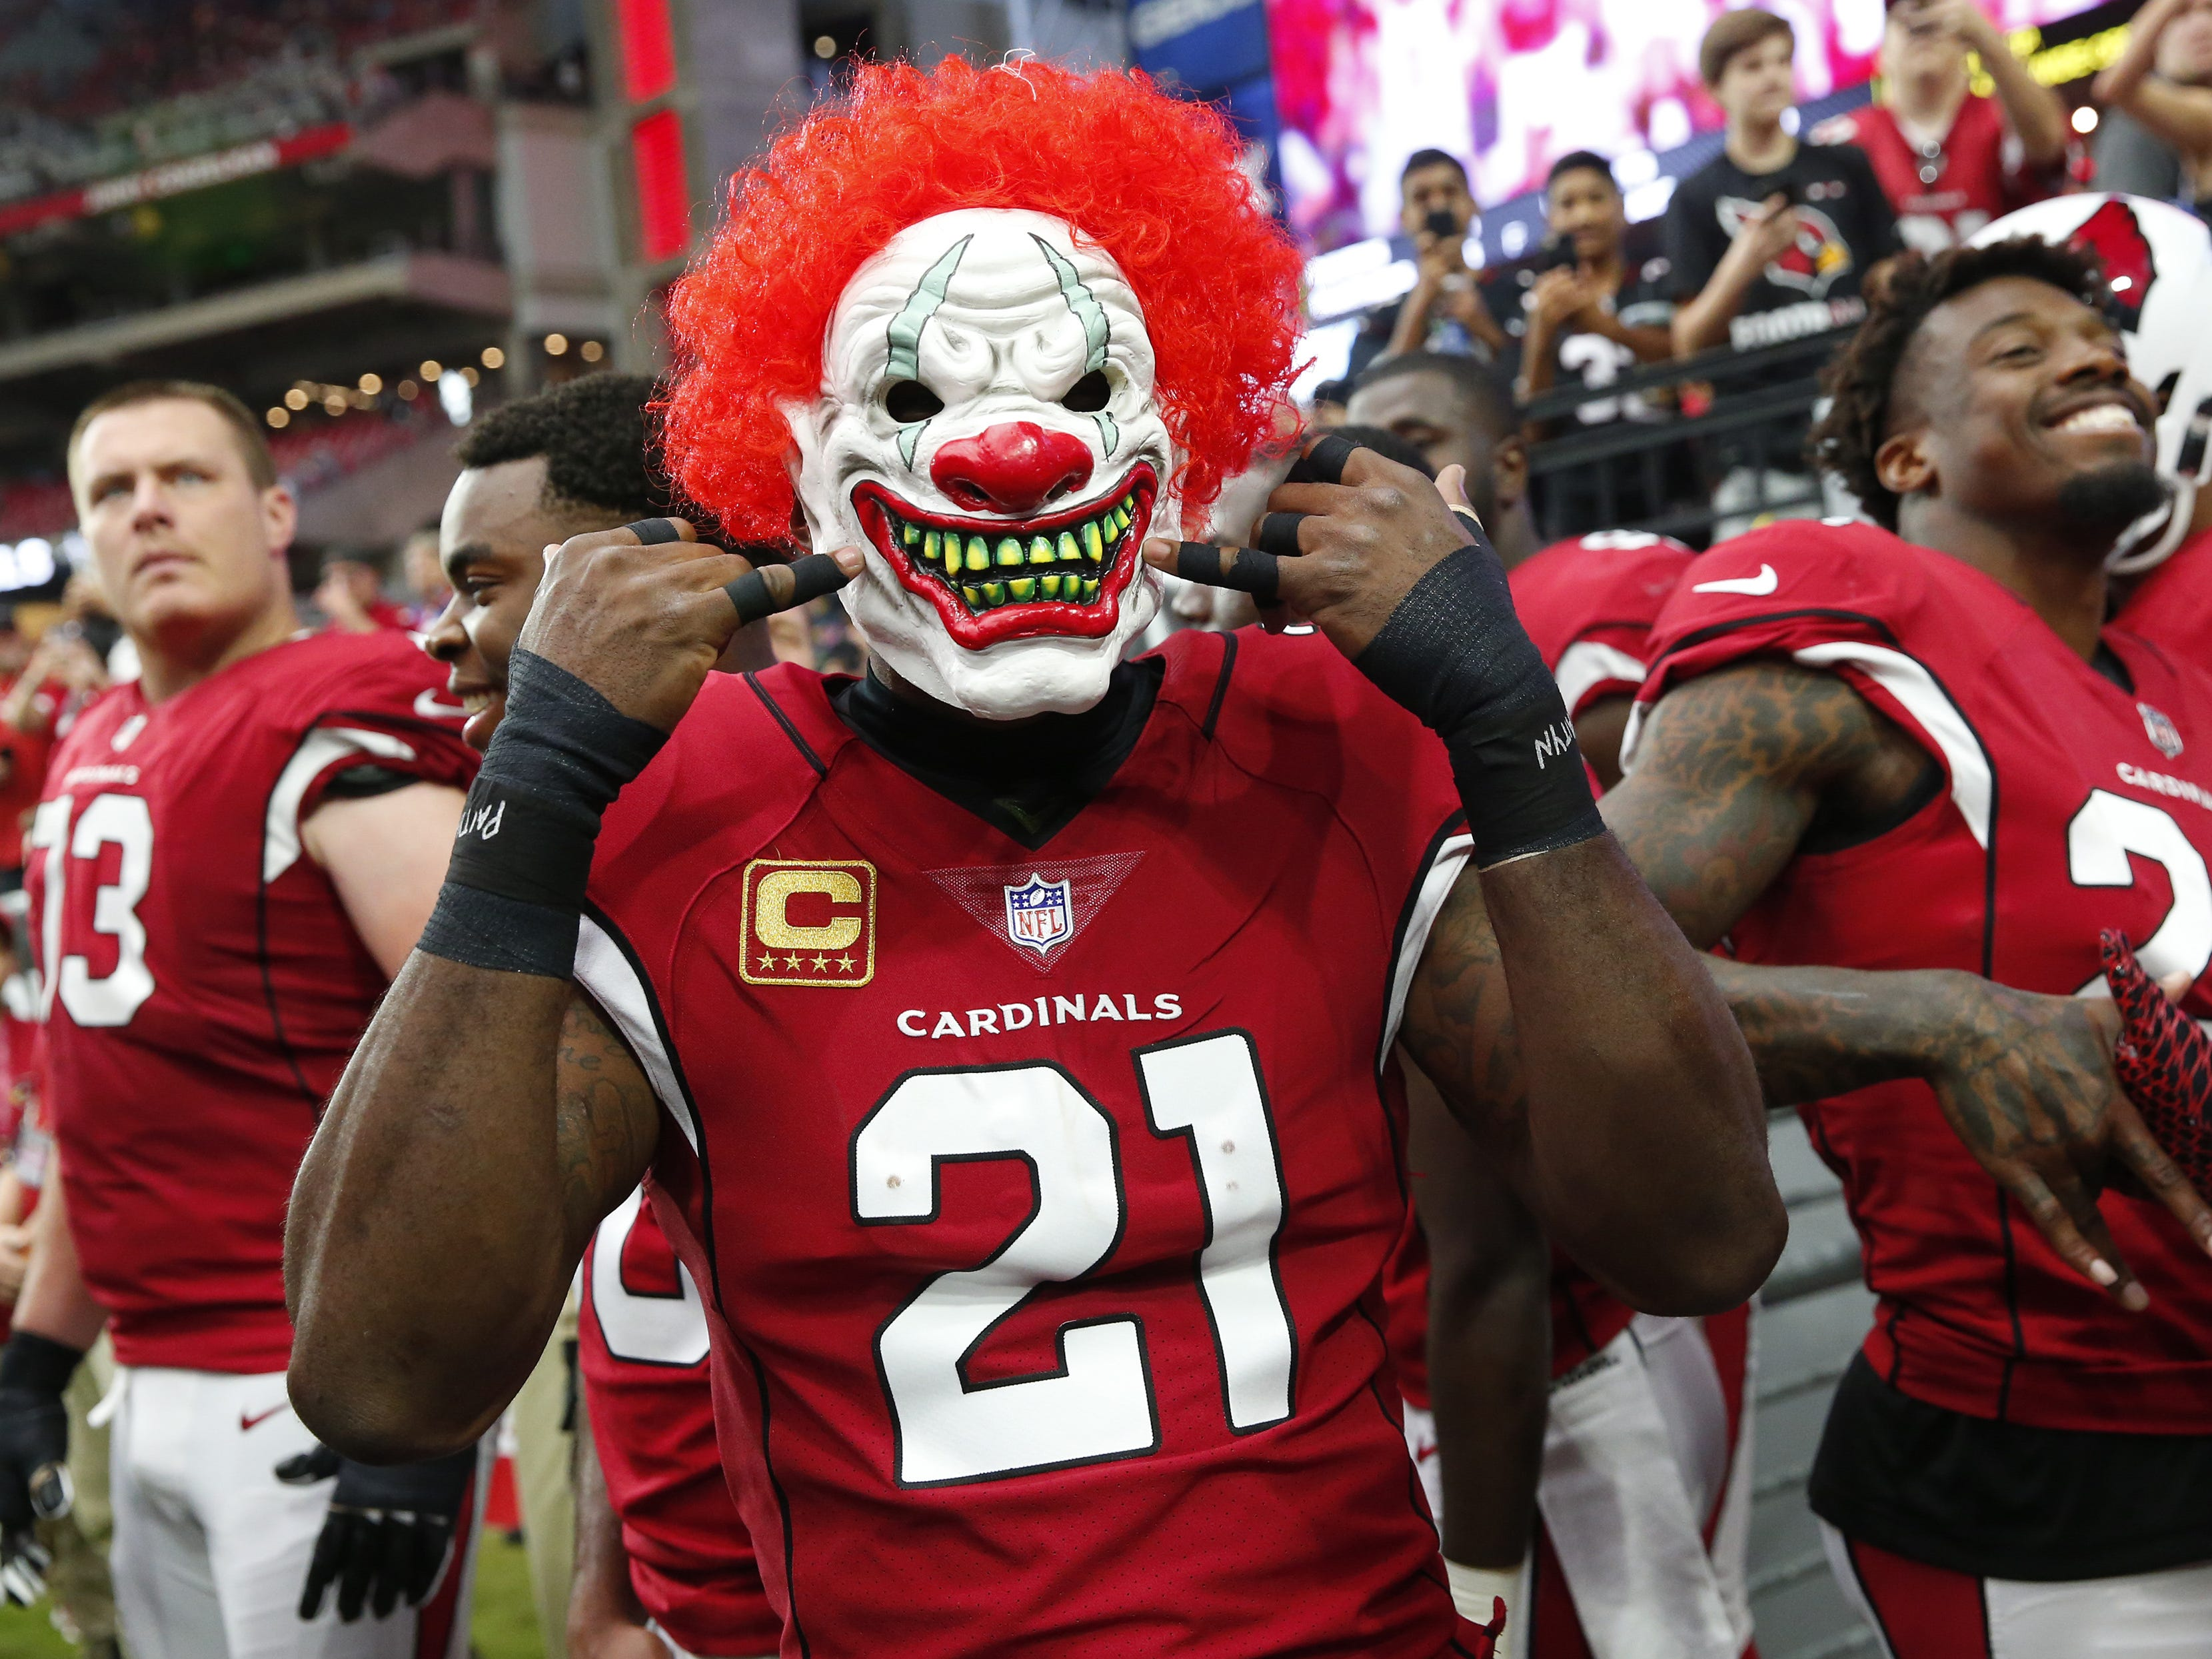 Arizona Cardinals cornerback Patrick Peterson (21) wears a mask before NFL action against the San Francisco 49ers on Oct. 28 at State Farm Stadium.